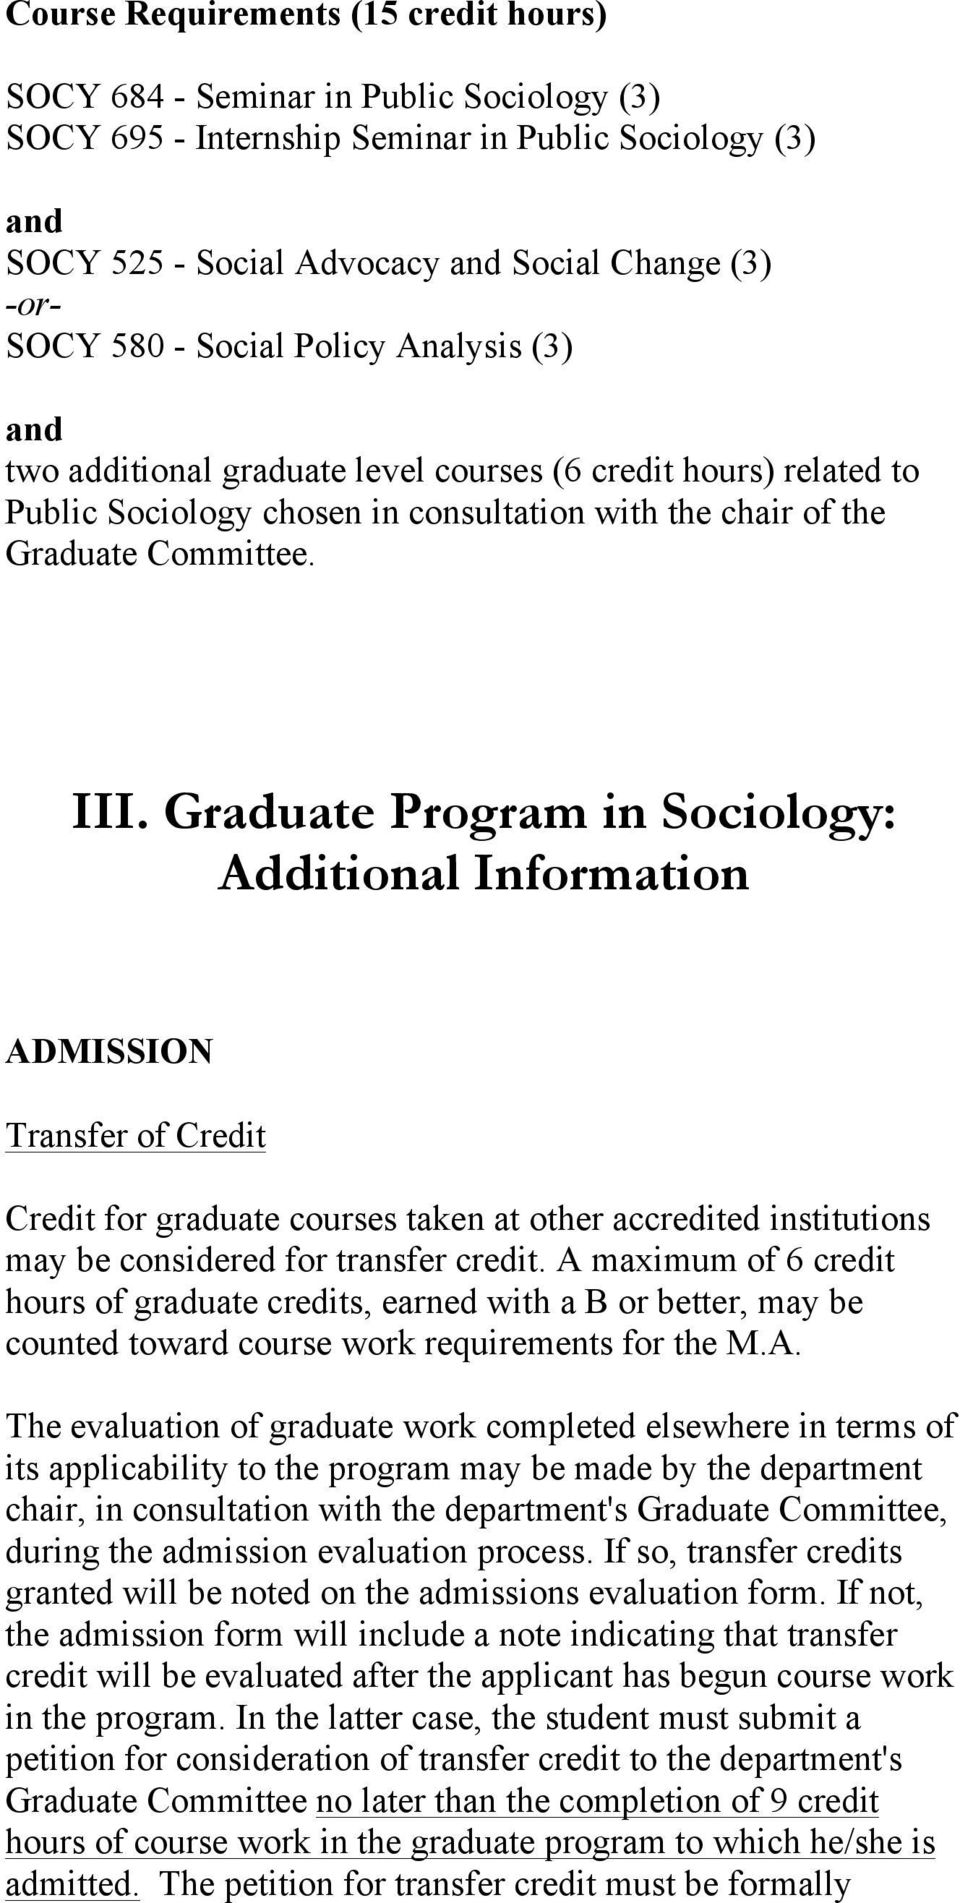 Graduate Program in Sociology: Additional Information ADMISSION Transfer of Credit Credit for graduate courses taken at other accredited institutions may be considered for transfer credit.